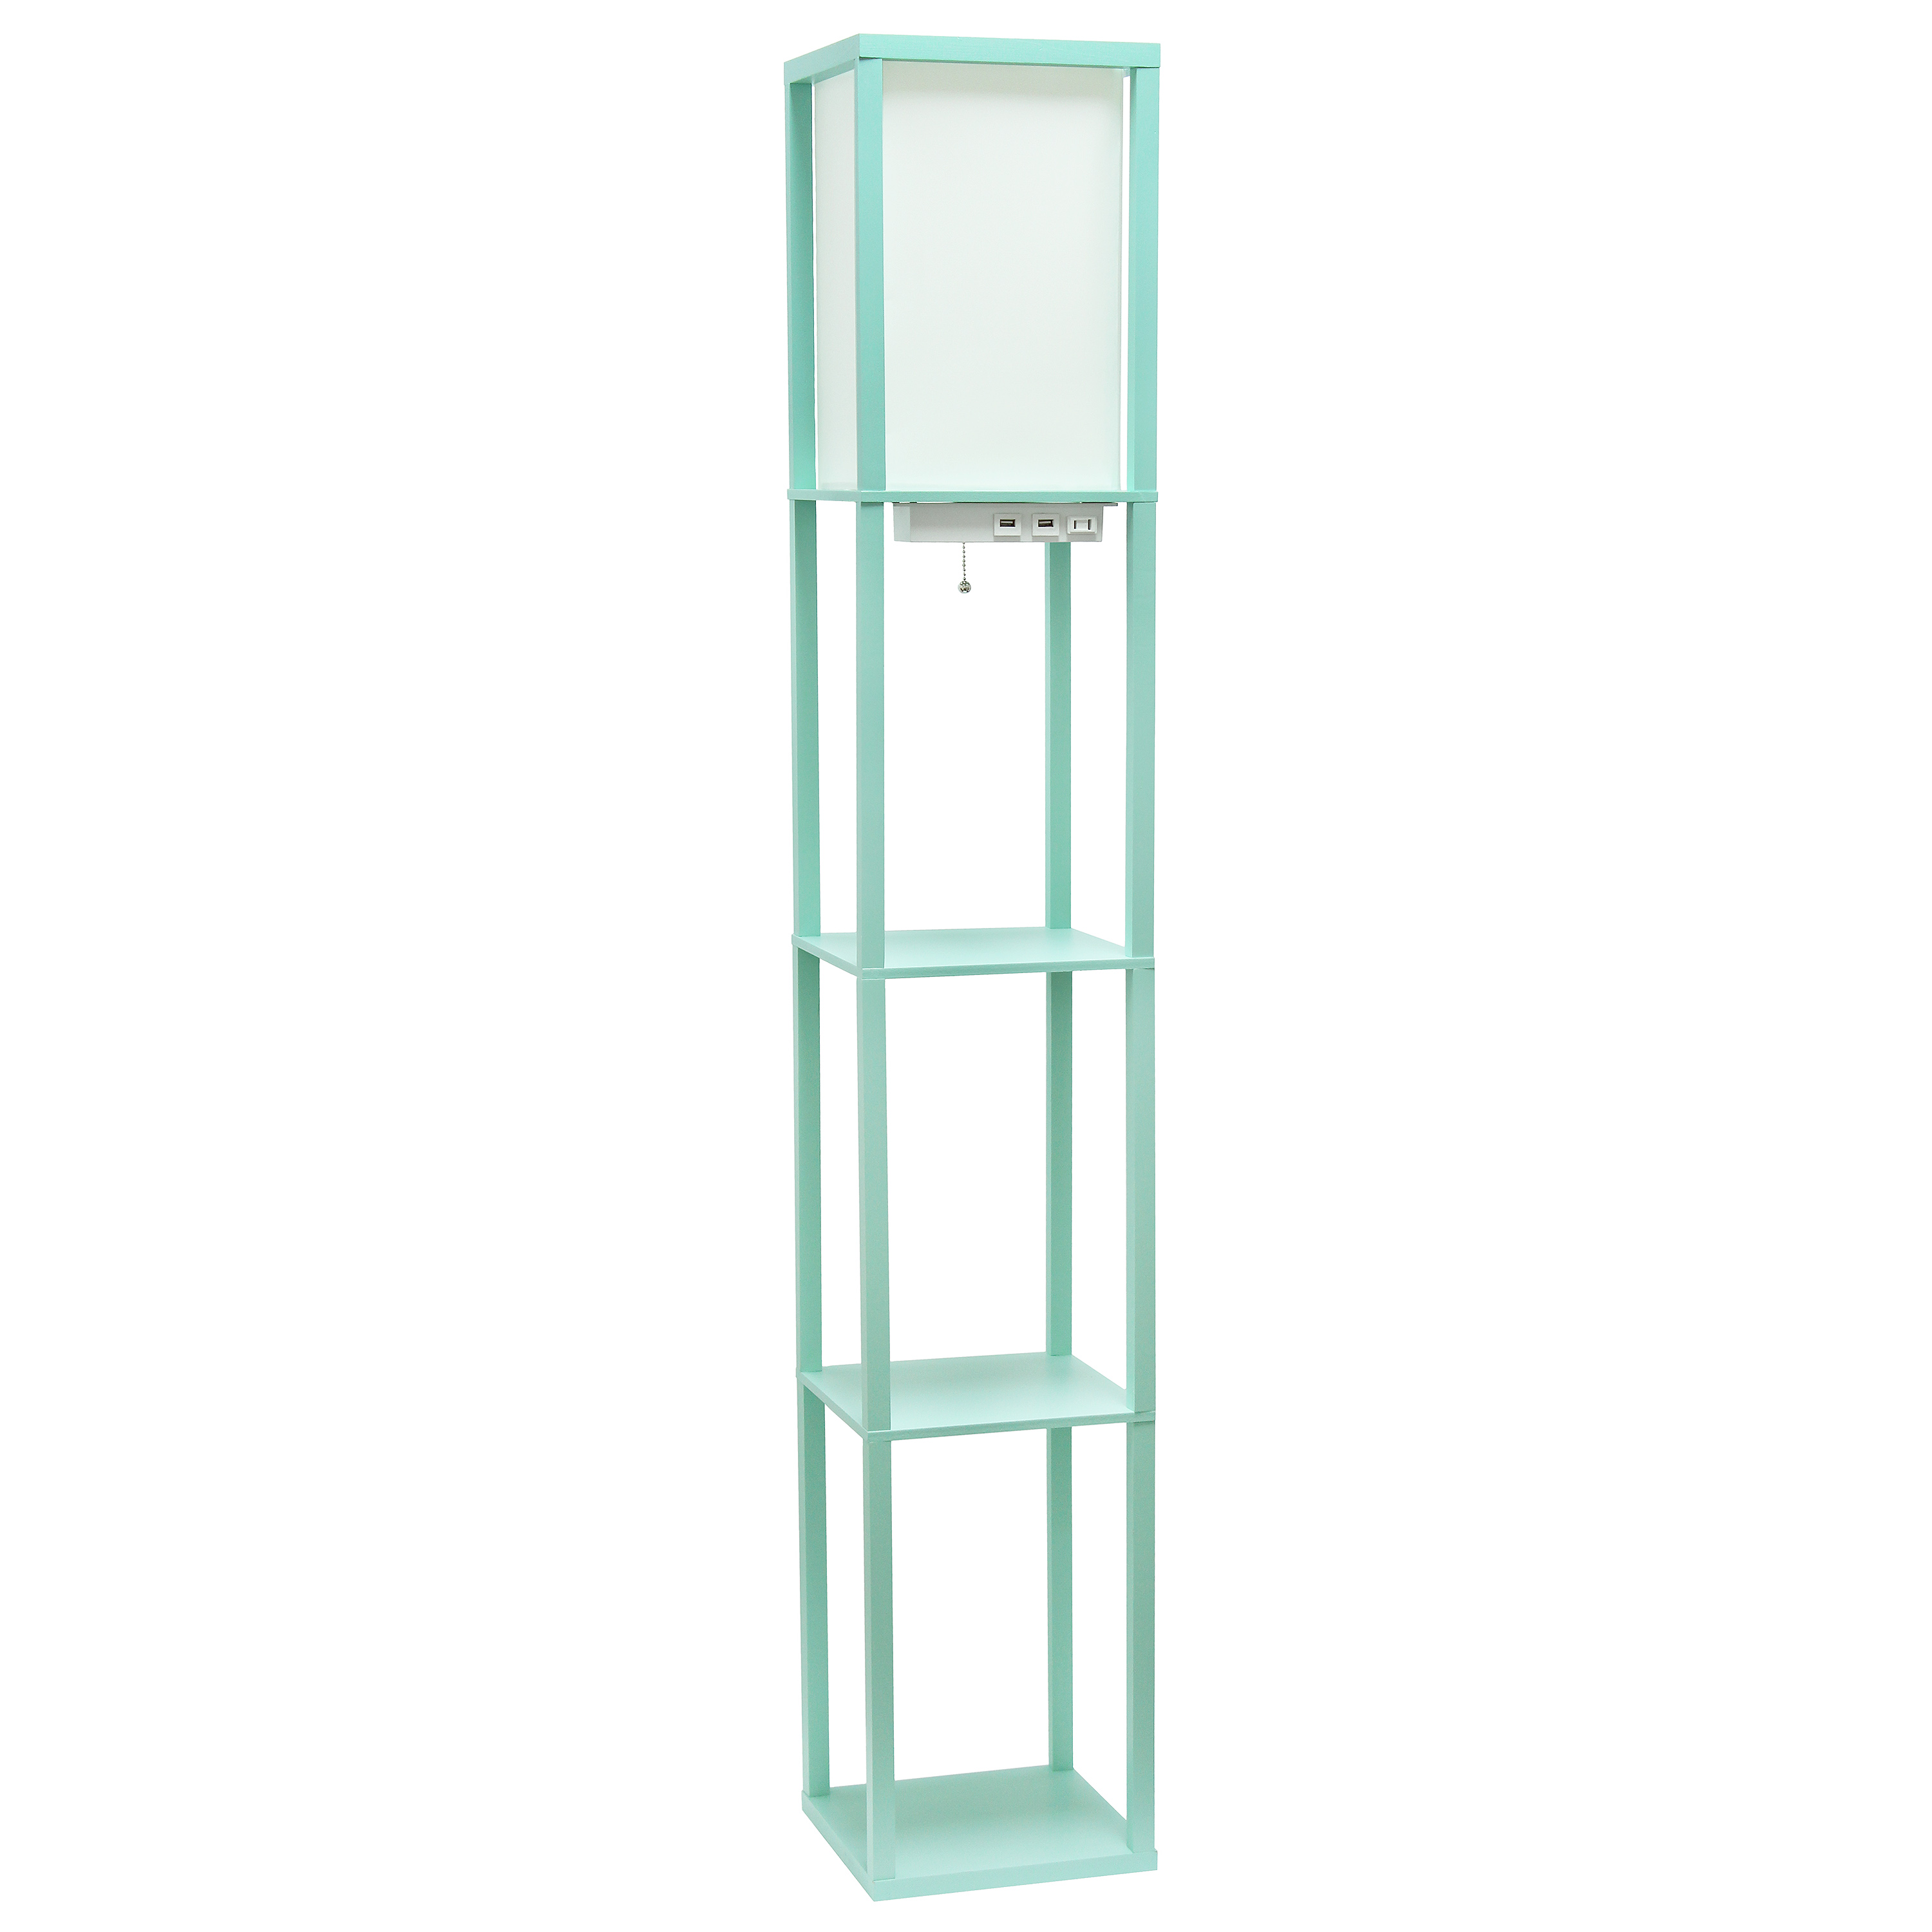 Simple Designs Floor Lamp Etagere Organizer Storage Shelf with 2 USB Charging Ports, 1 Charging Outlet and Linen Shade, Aqua